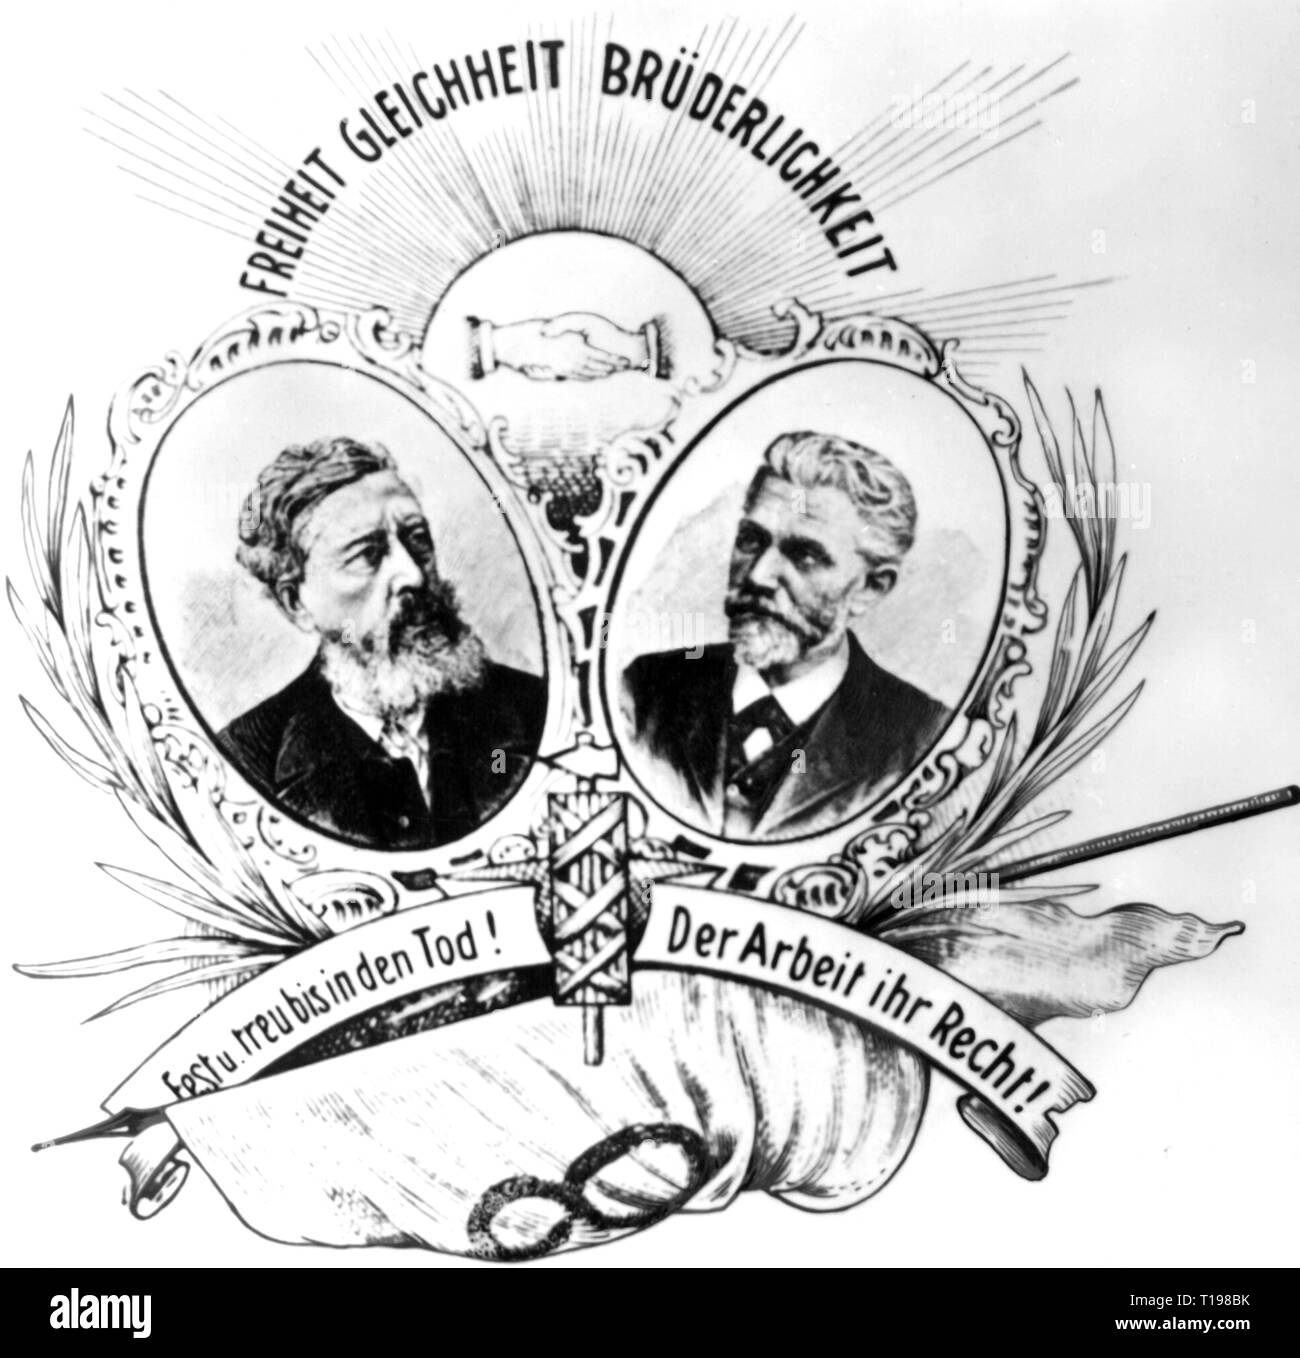 politics, labour movement, portraits of William Liebknecht and August Bebel, motto 'Liberty, Equality, Brotherliness', postcard to the First of May, detail, Germany, circa 1910, Additional-Rights-Clearance-Info-Not-Available - Stock Image